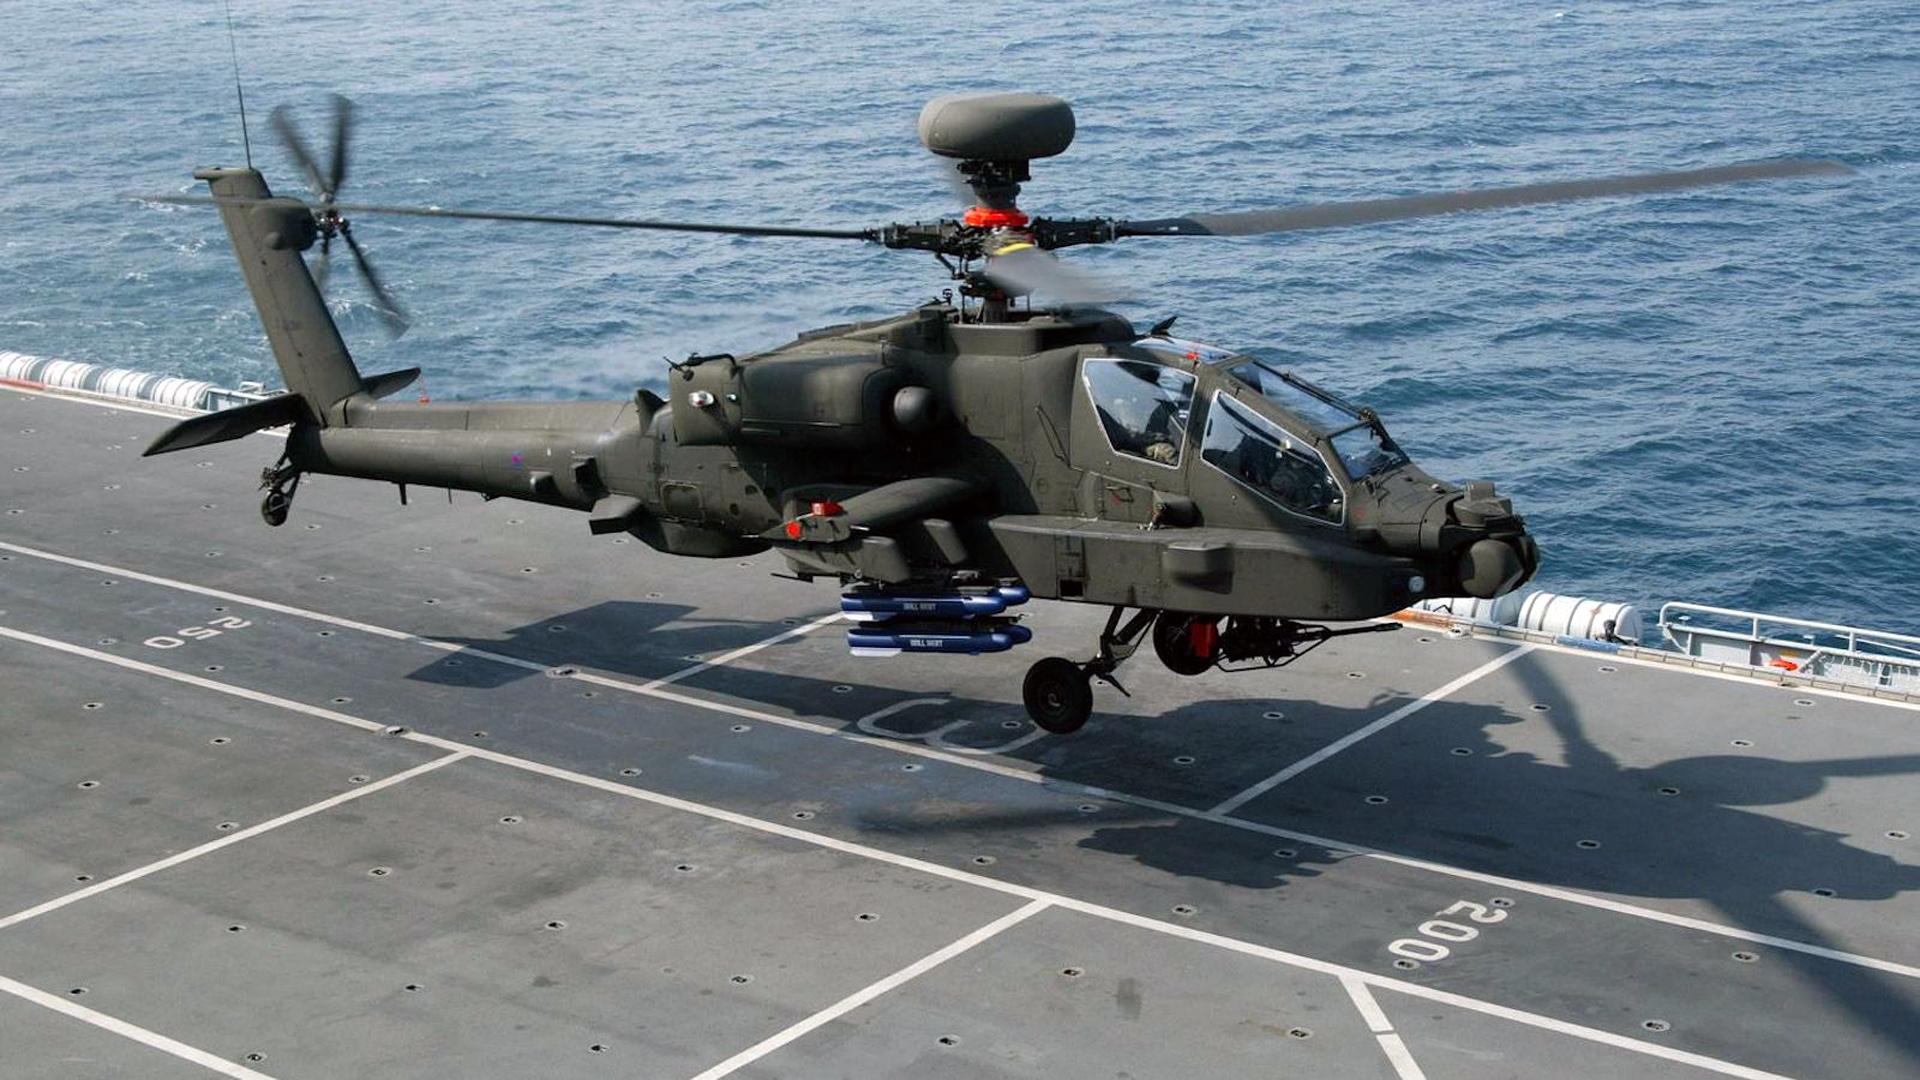 british apache helicopter with Big on Incredible Military Photos Pt5 18 Pics furthermore 673sqn moreover Prince Harry Promoted Captain British Army Gets 7k Pay Rise likewise Close Call This Is It What The Footage Of The Ah 64d Crash In Afghanistan Says besides Watch.